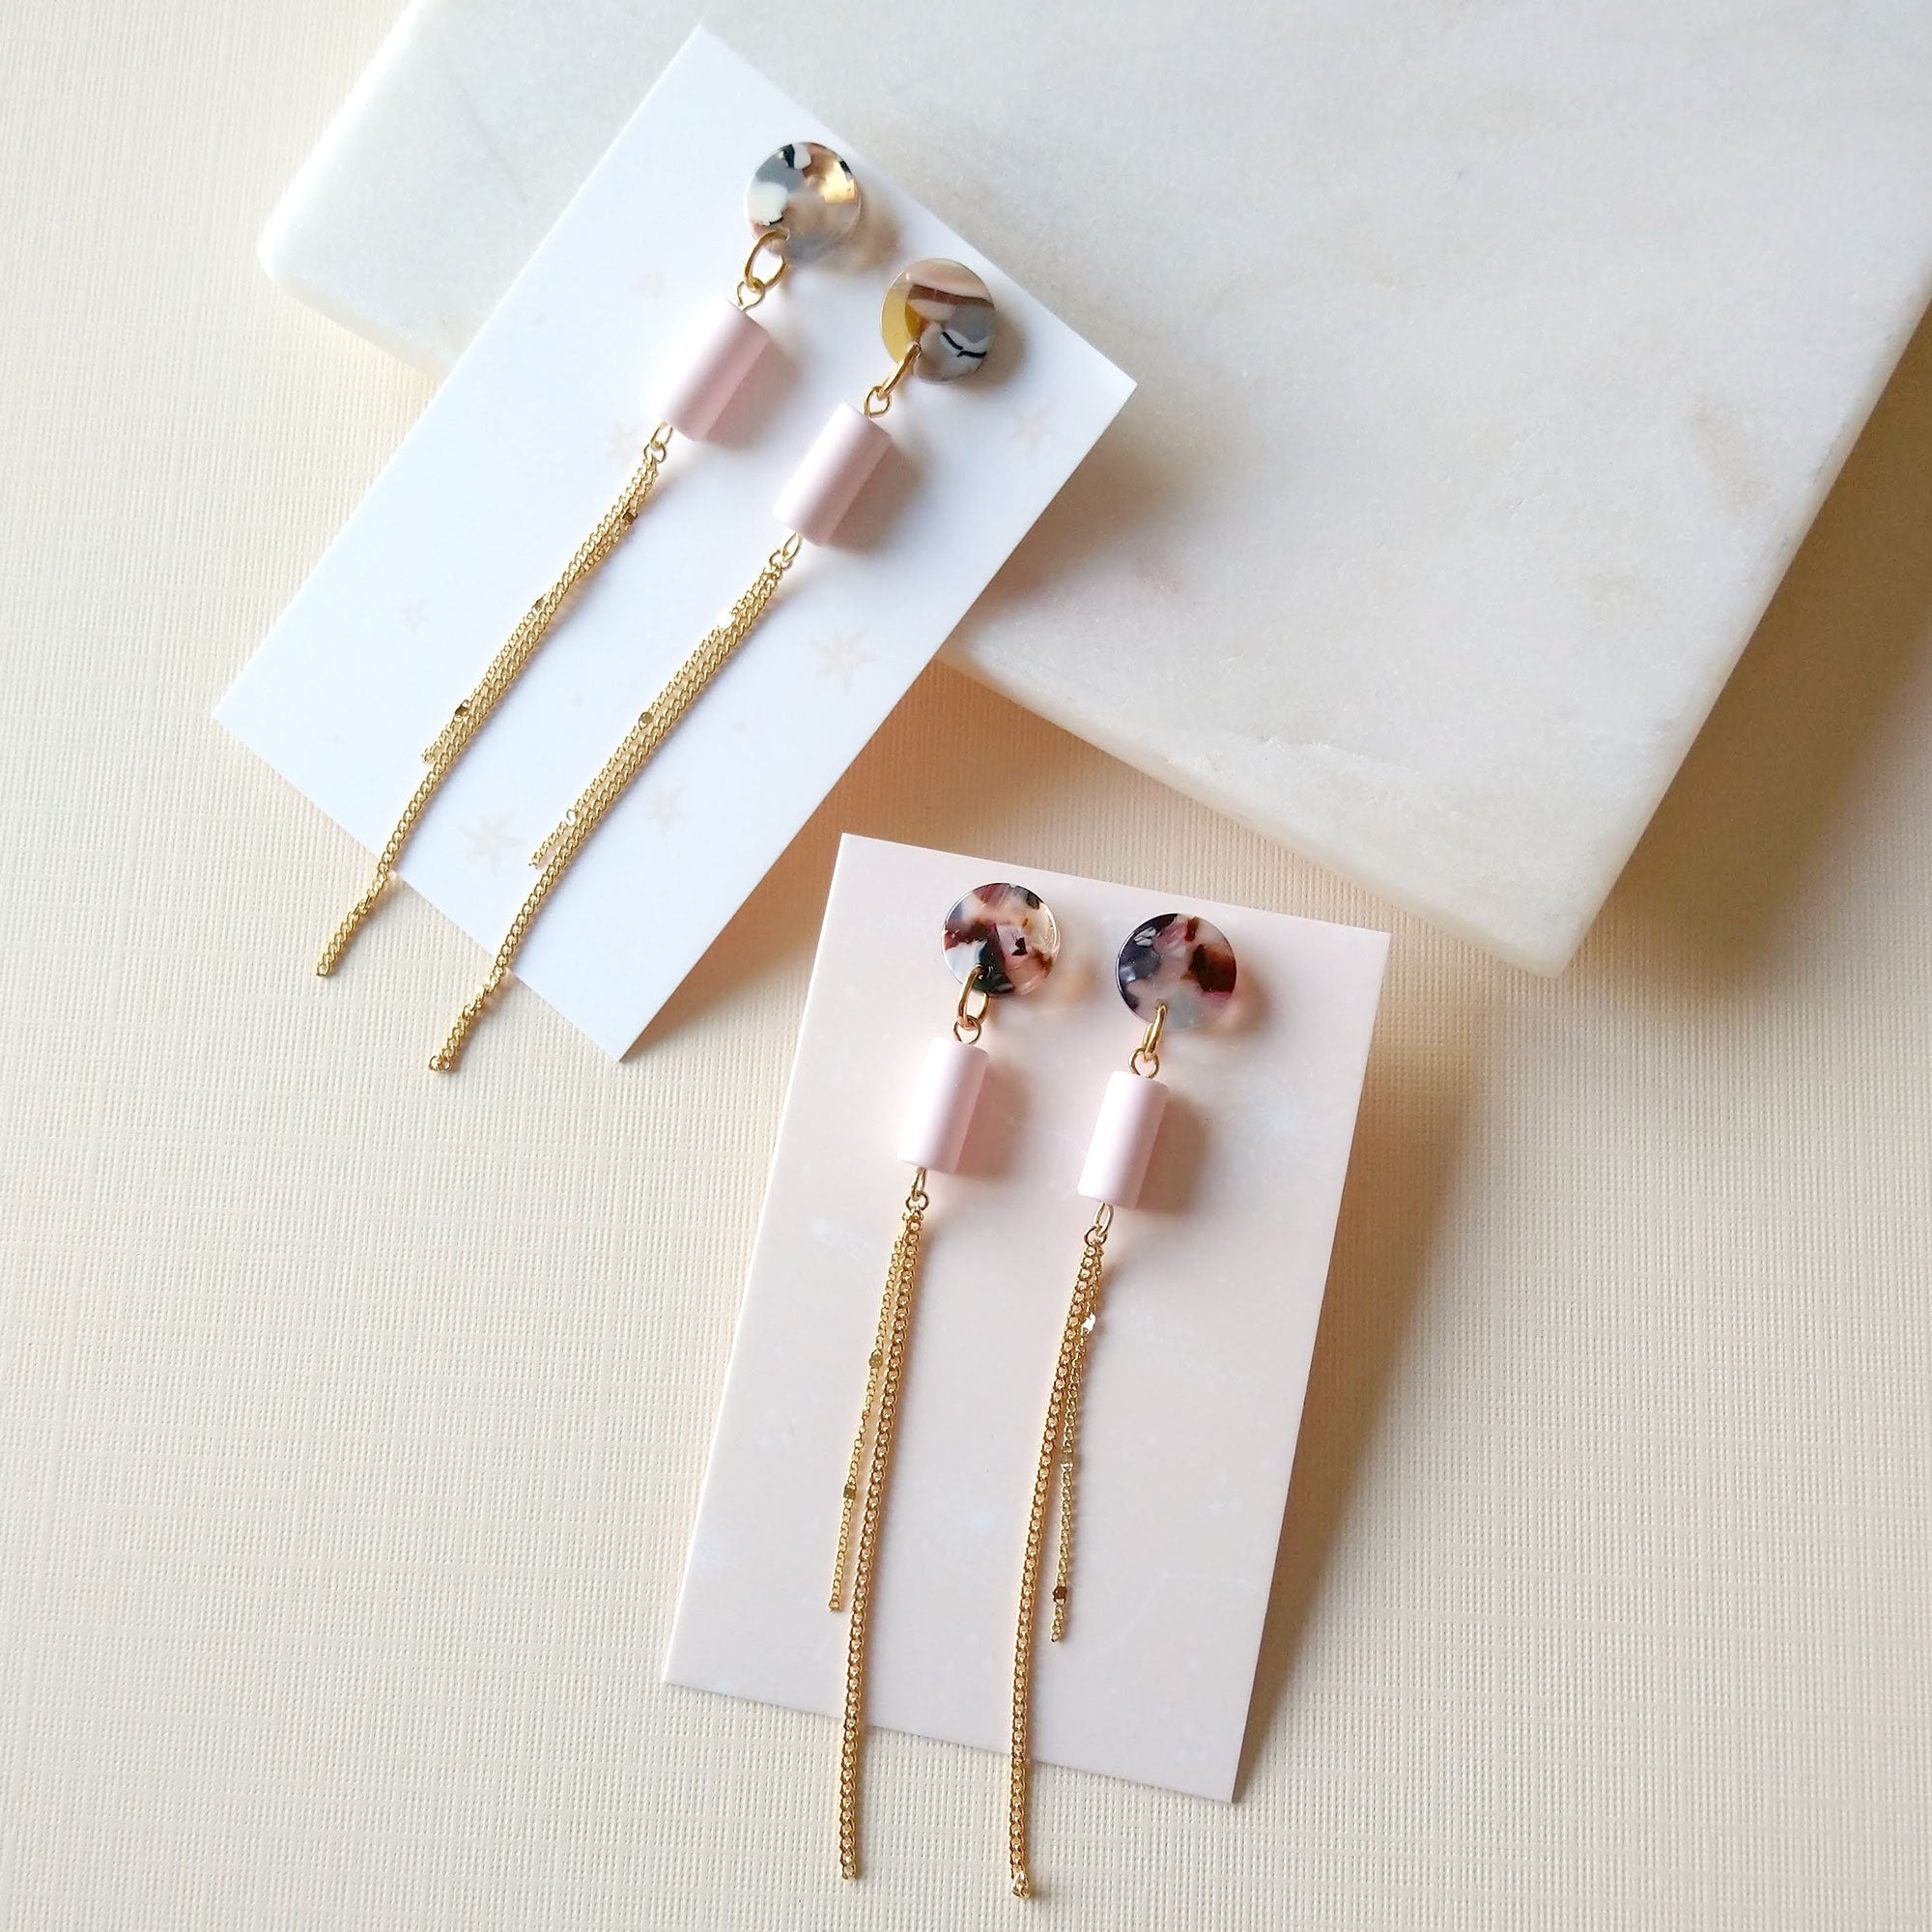 acetate earrings with vintage cylinder pink beads and long chains